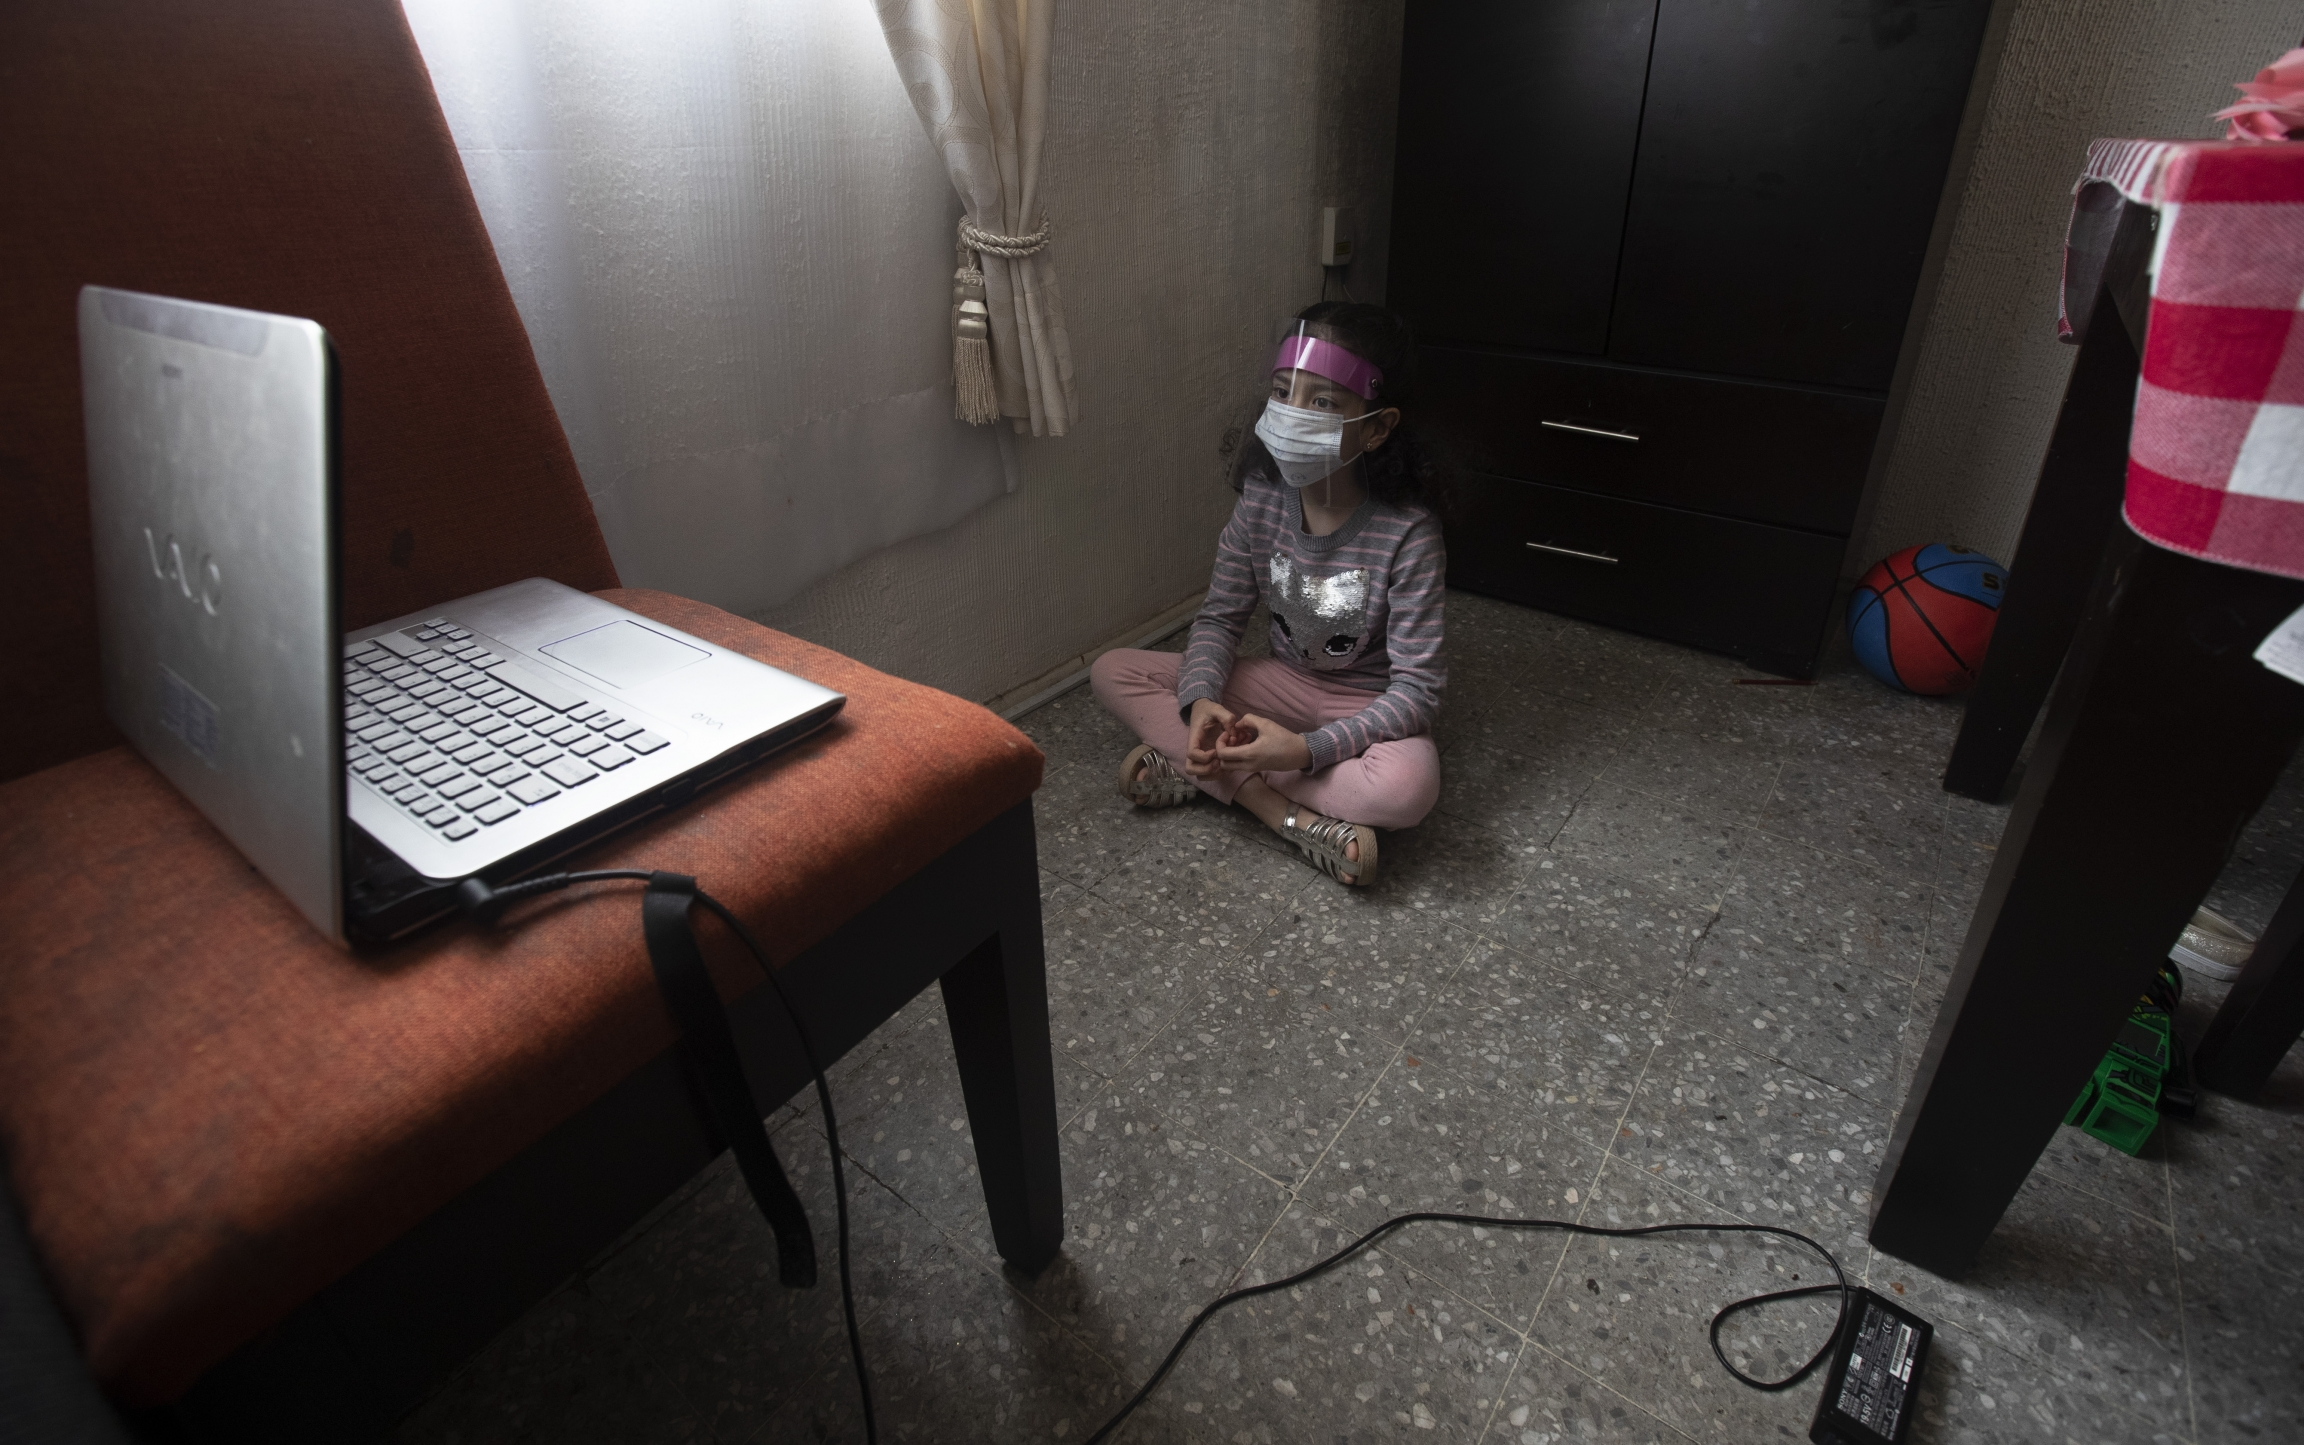 A girl wears a plastic guard indoors as she watches a laptop screen.